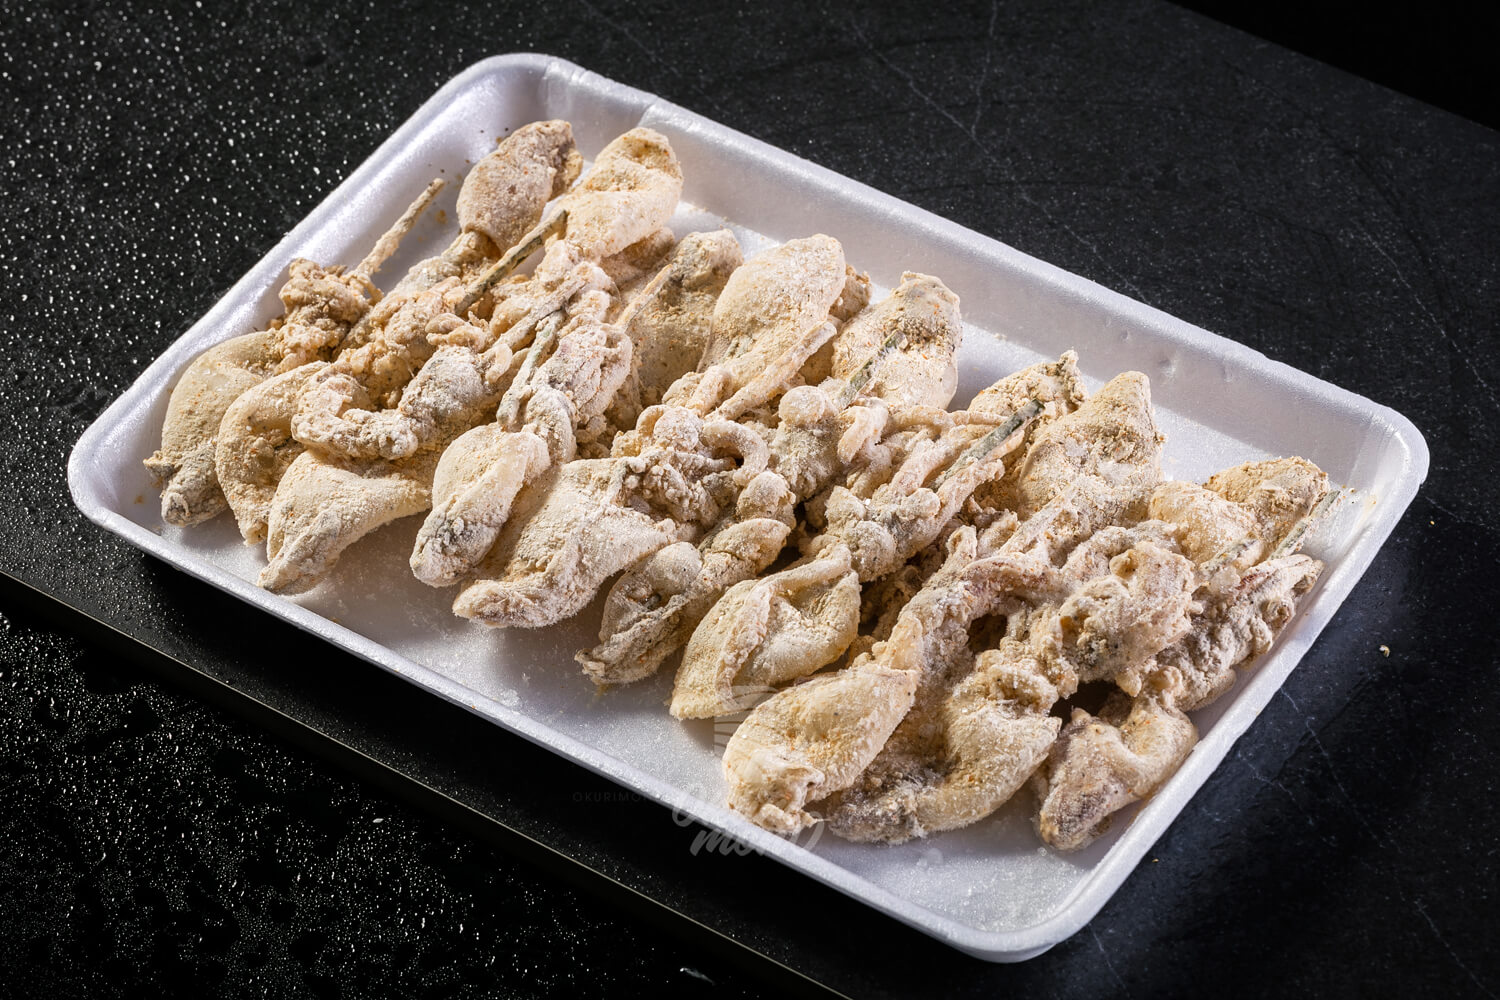 Mực Non Tẩm Bột Karaage - Whole cleaned baby squid skewered with karaage